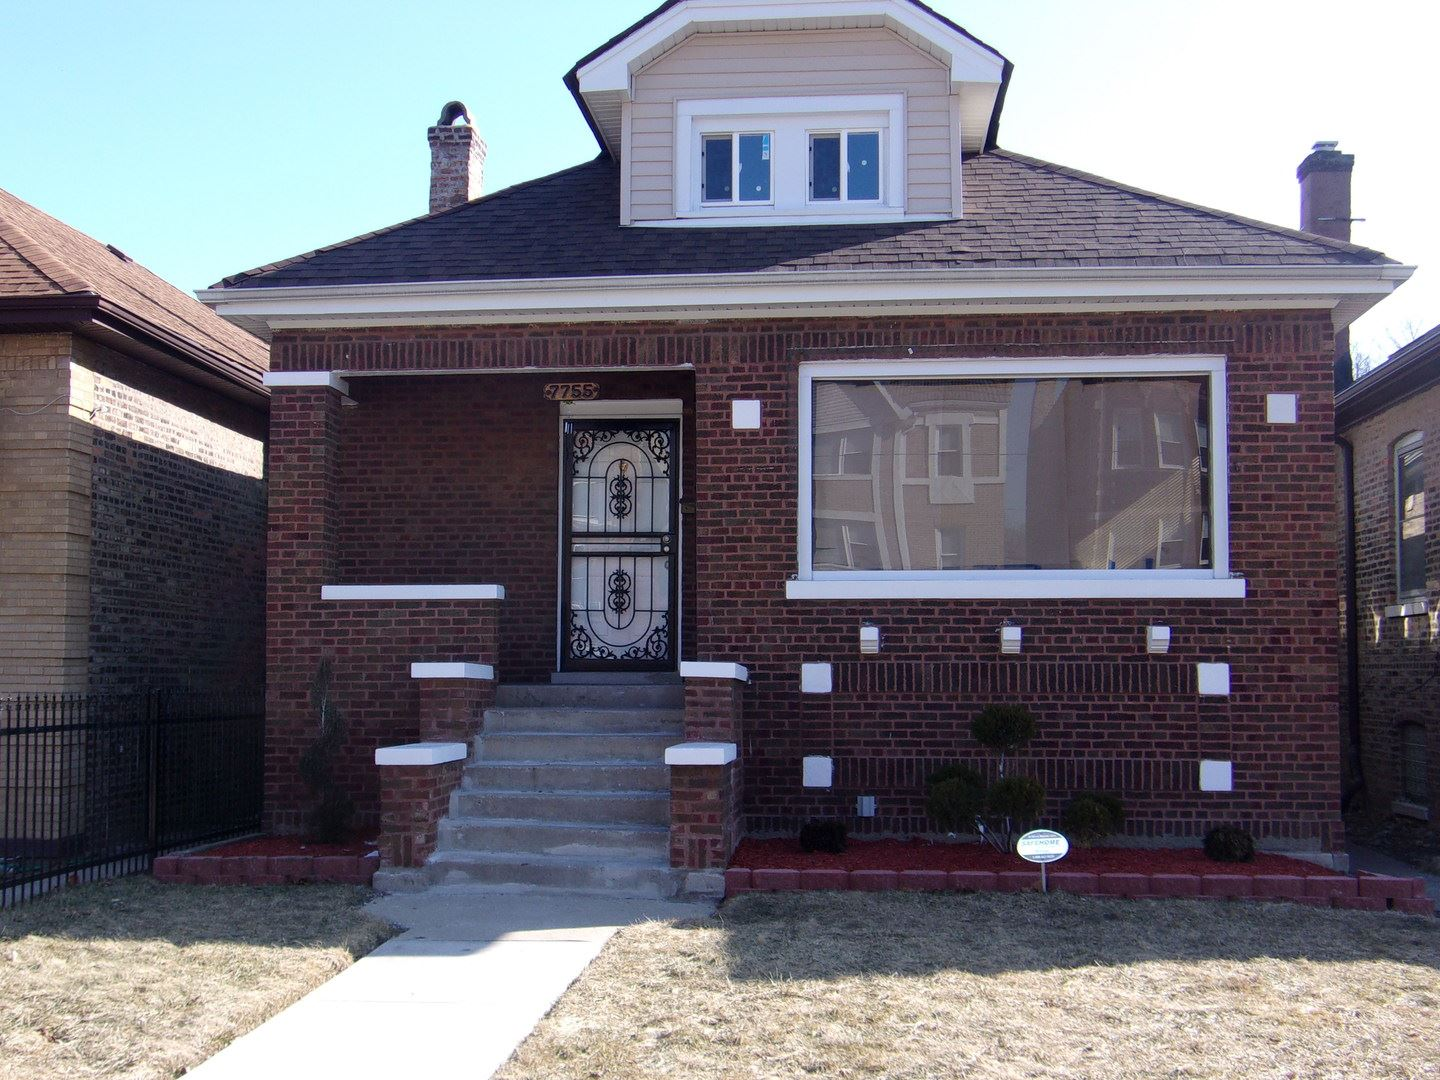 7755 S SEELEY Avenue, Chicago, IL 60620 - #: 10688224